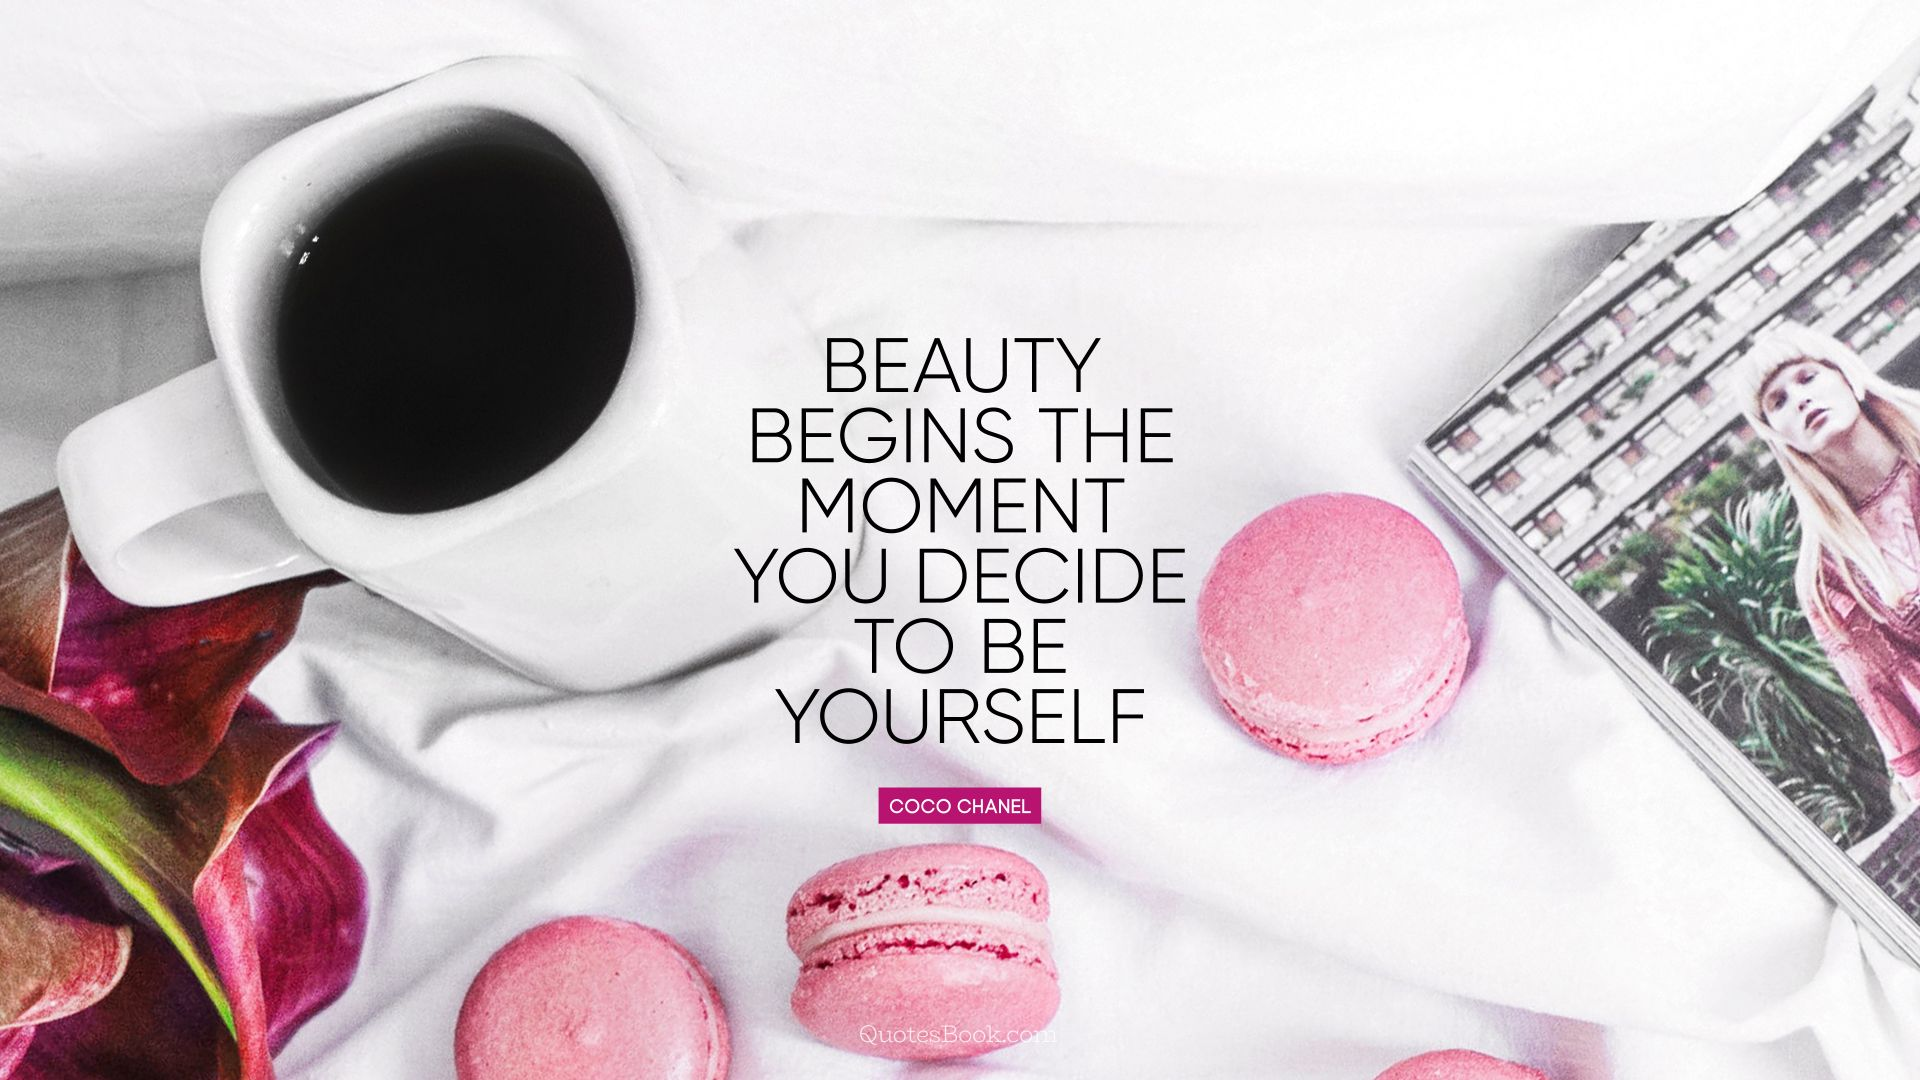 Beauty begins the moment you decide to be yourself. - Quote by Coco Chanel